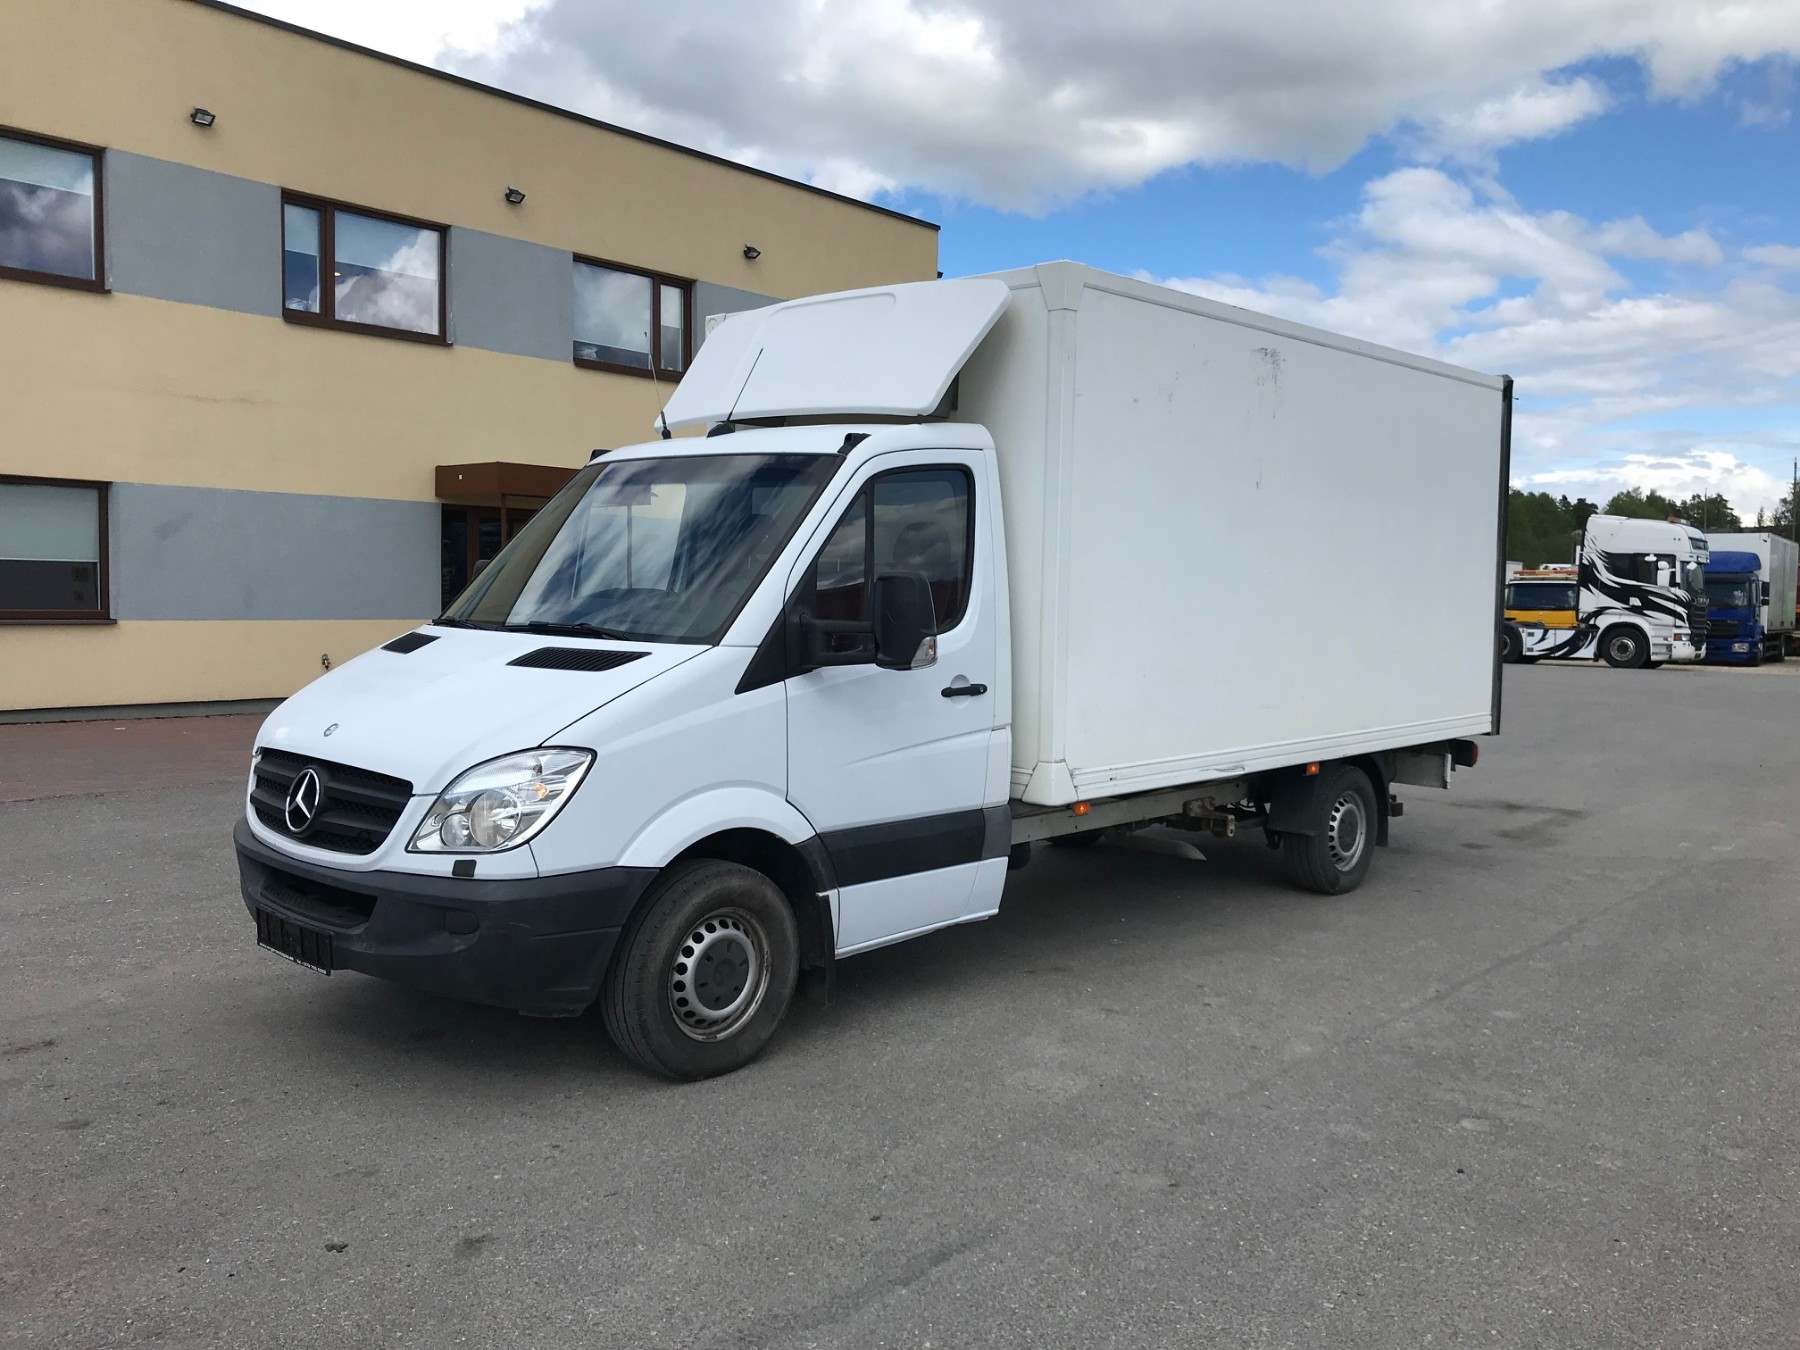 Mercedes-Benz Sprinter 316 CDI + Zepro Lift